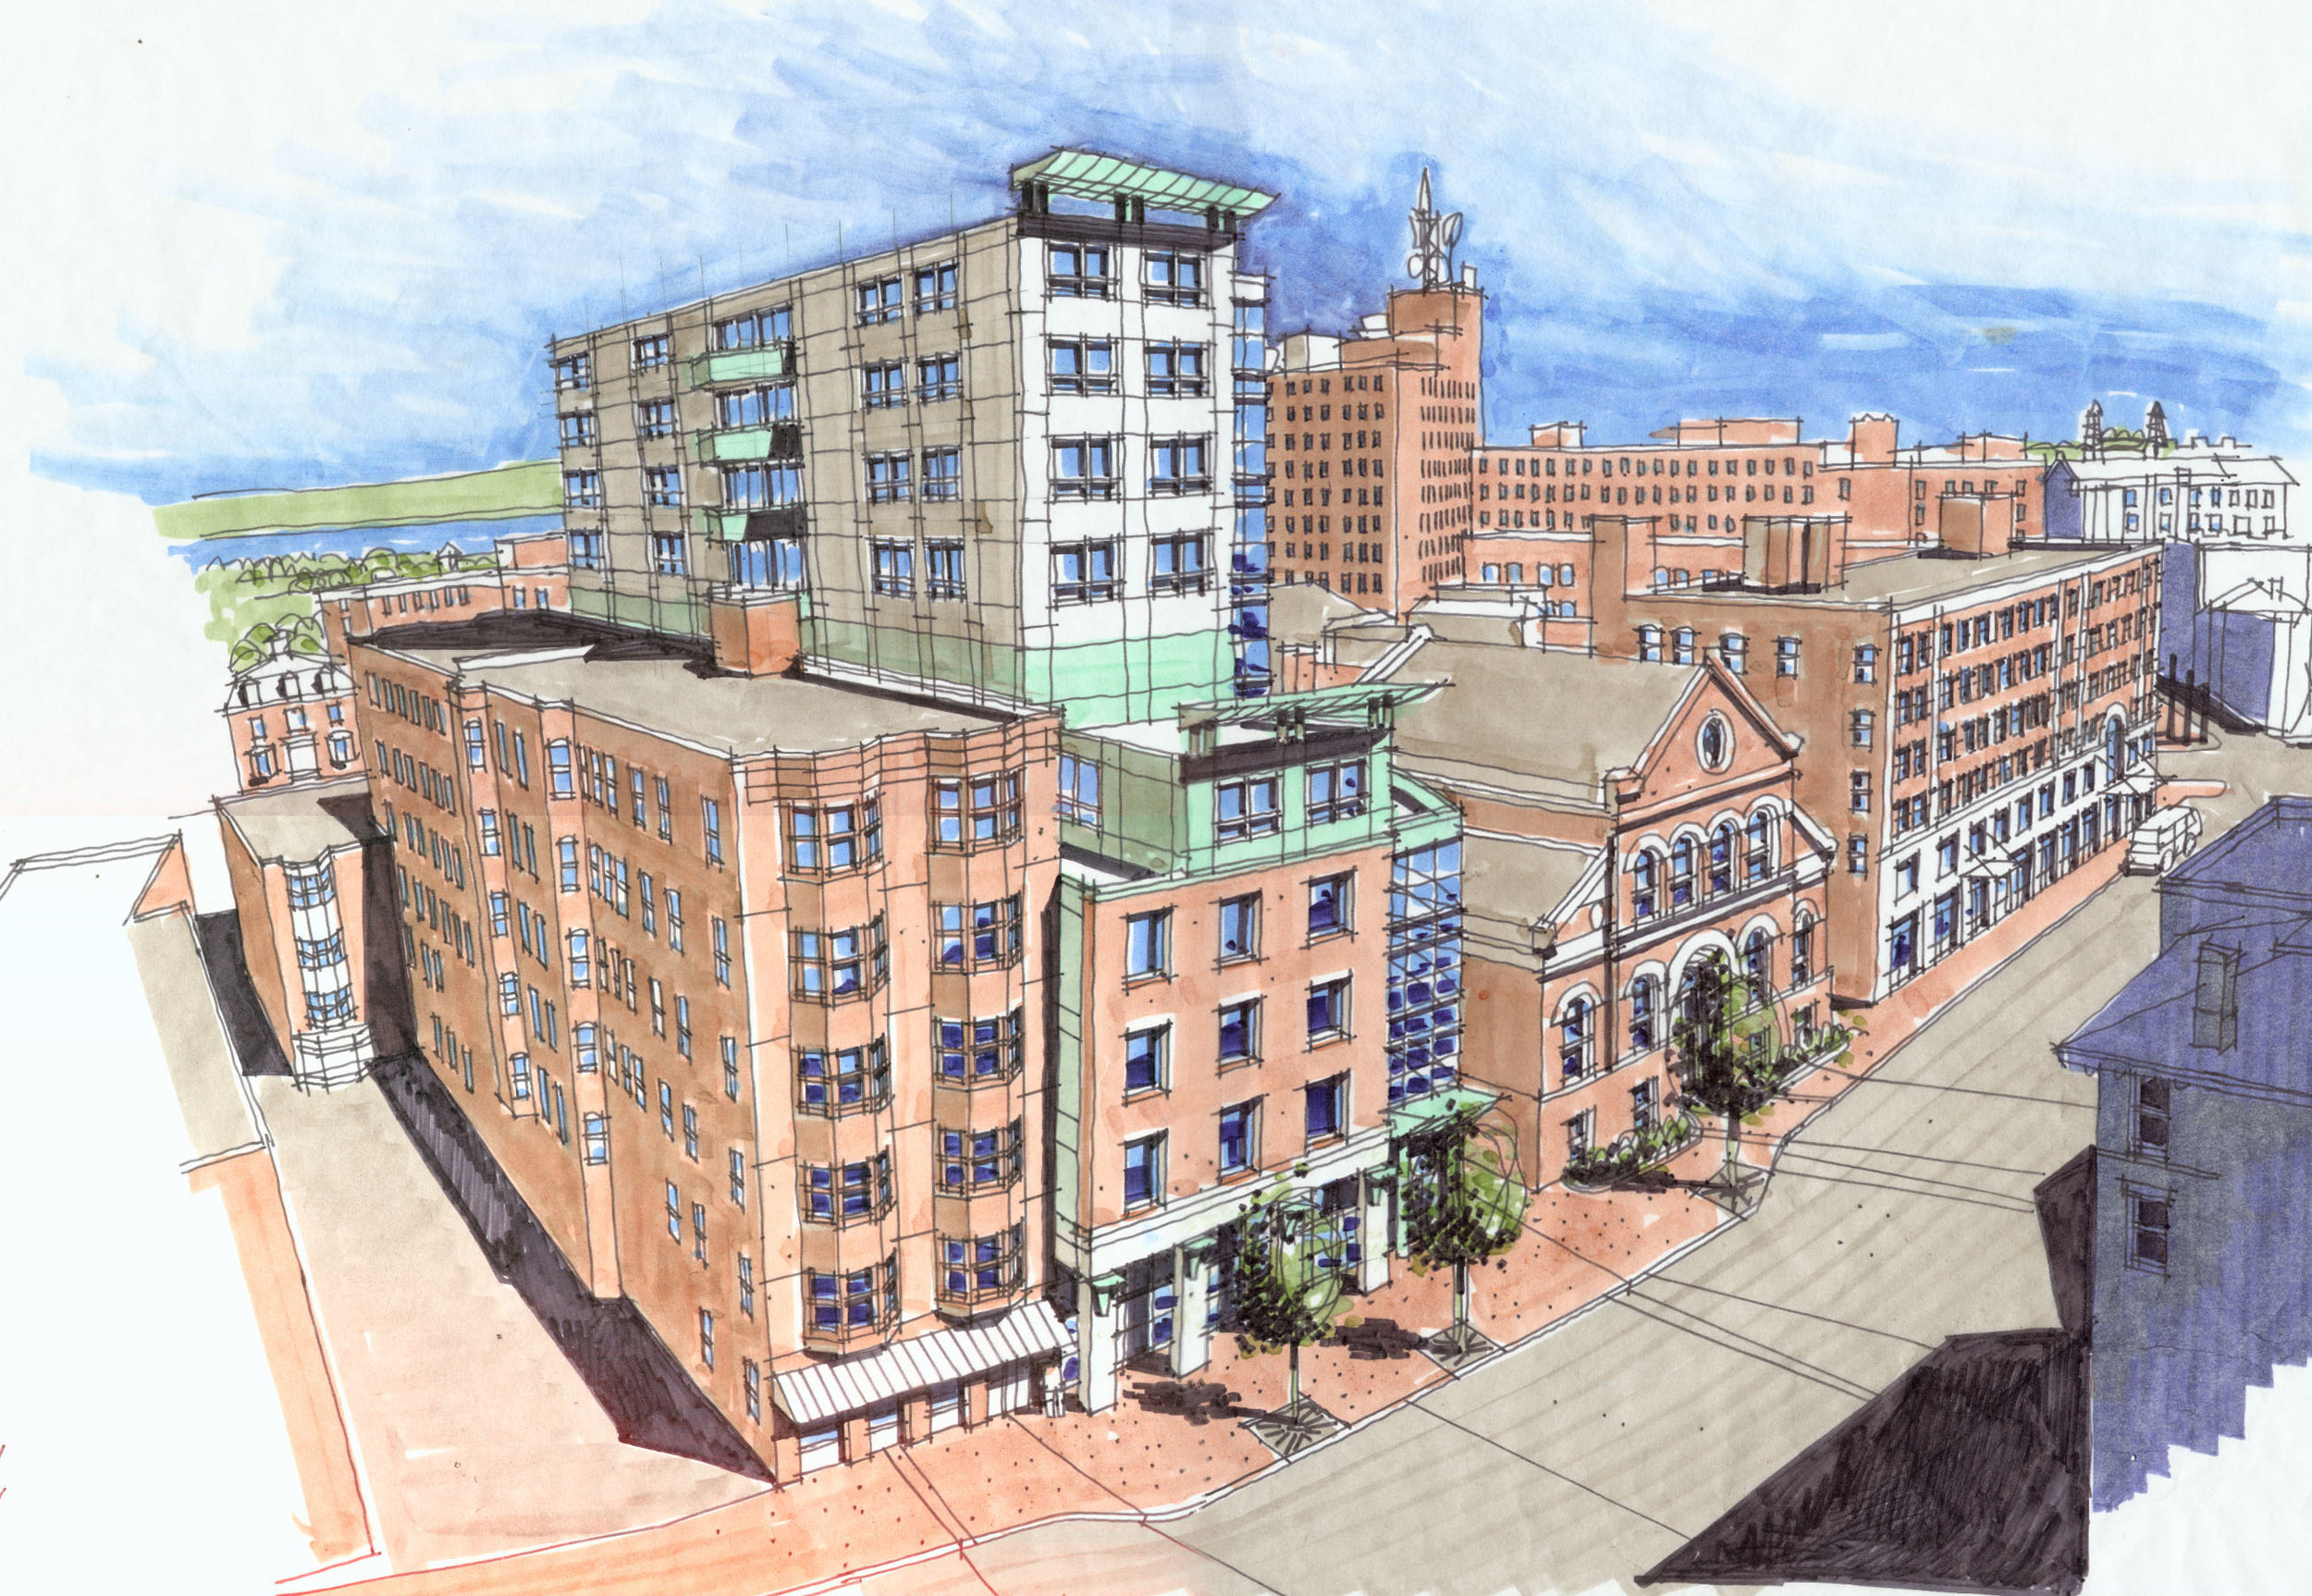 Perspective sketch, proposed renovation of Congress Hall, Congress Street, Portland